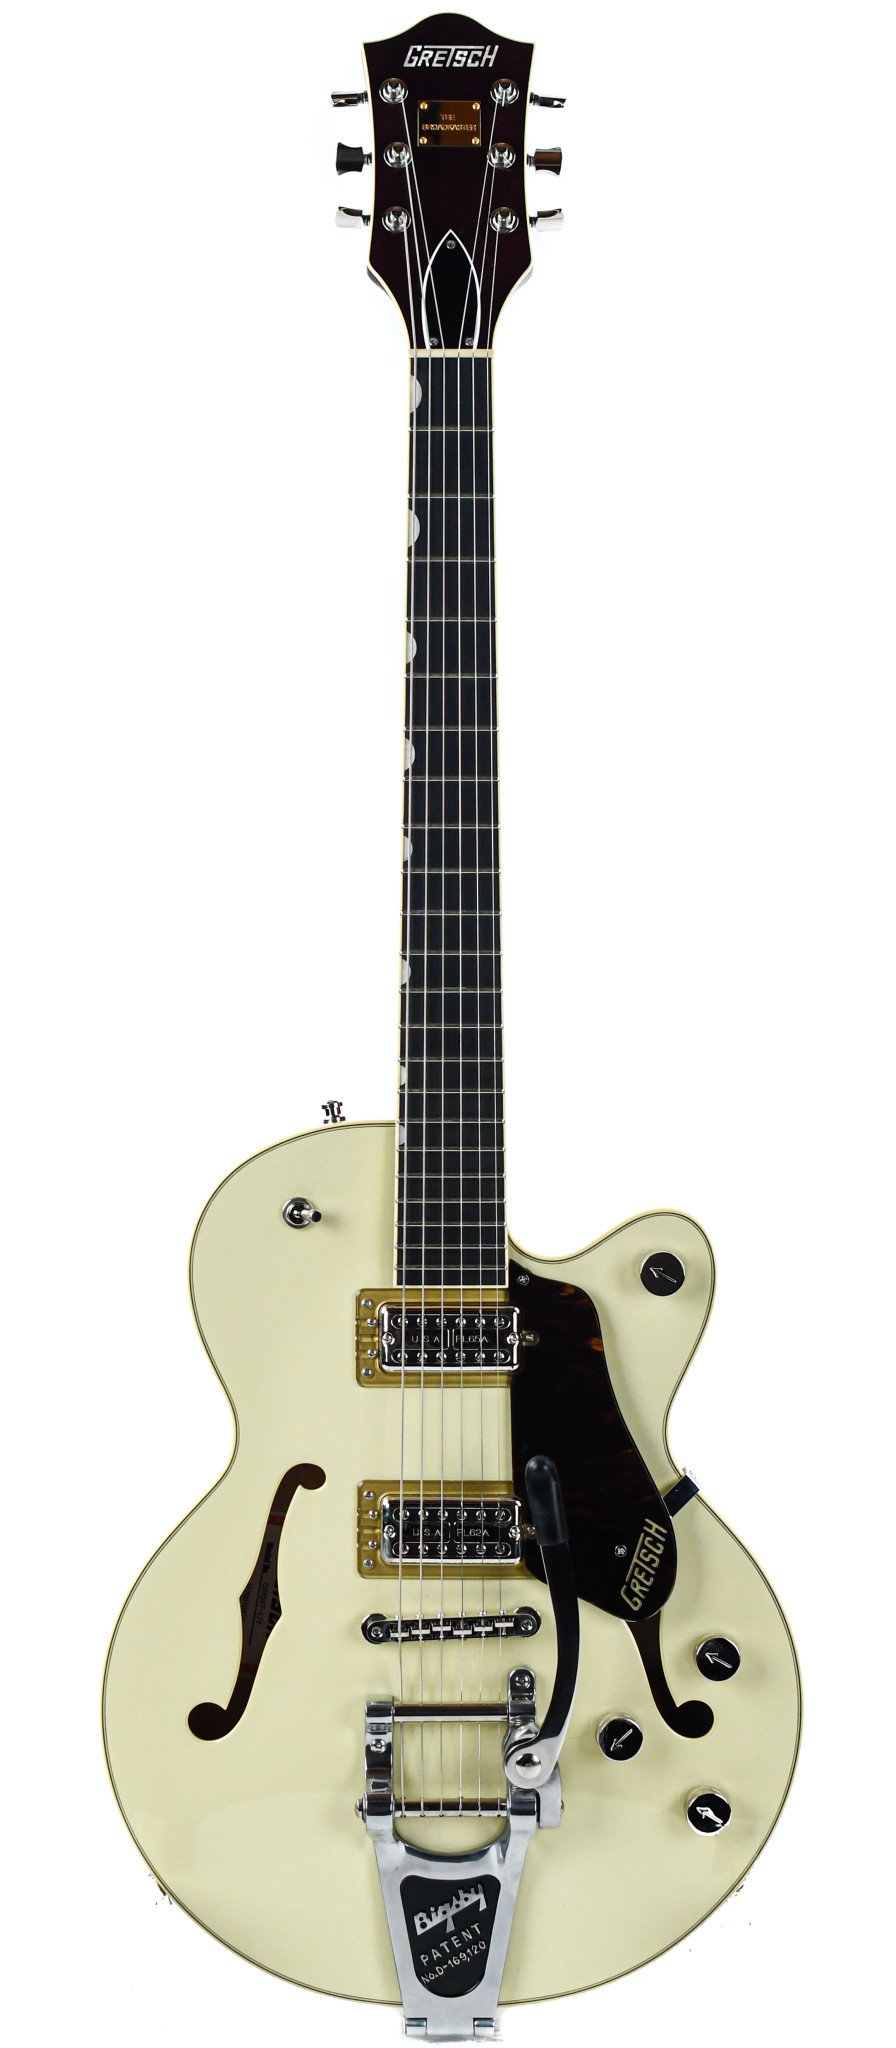 G6659T Players Edition Broadkaster Jr. Two Tone Lotus Ivory/Walnut Stain